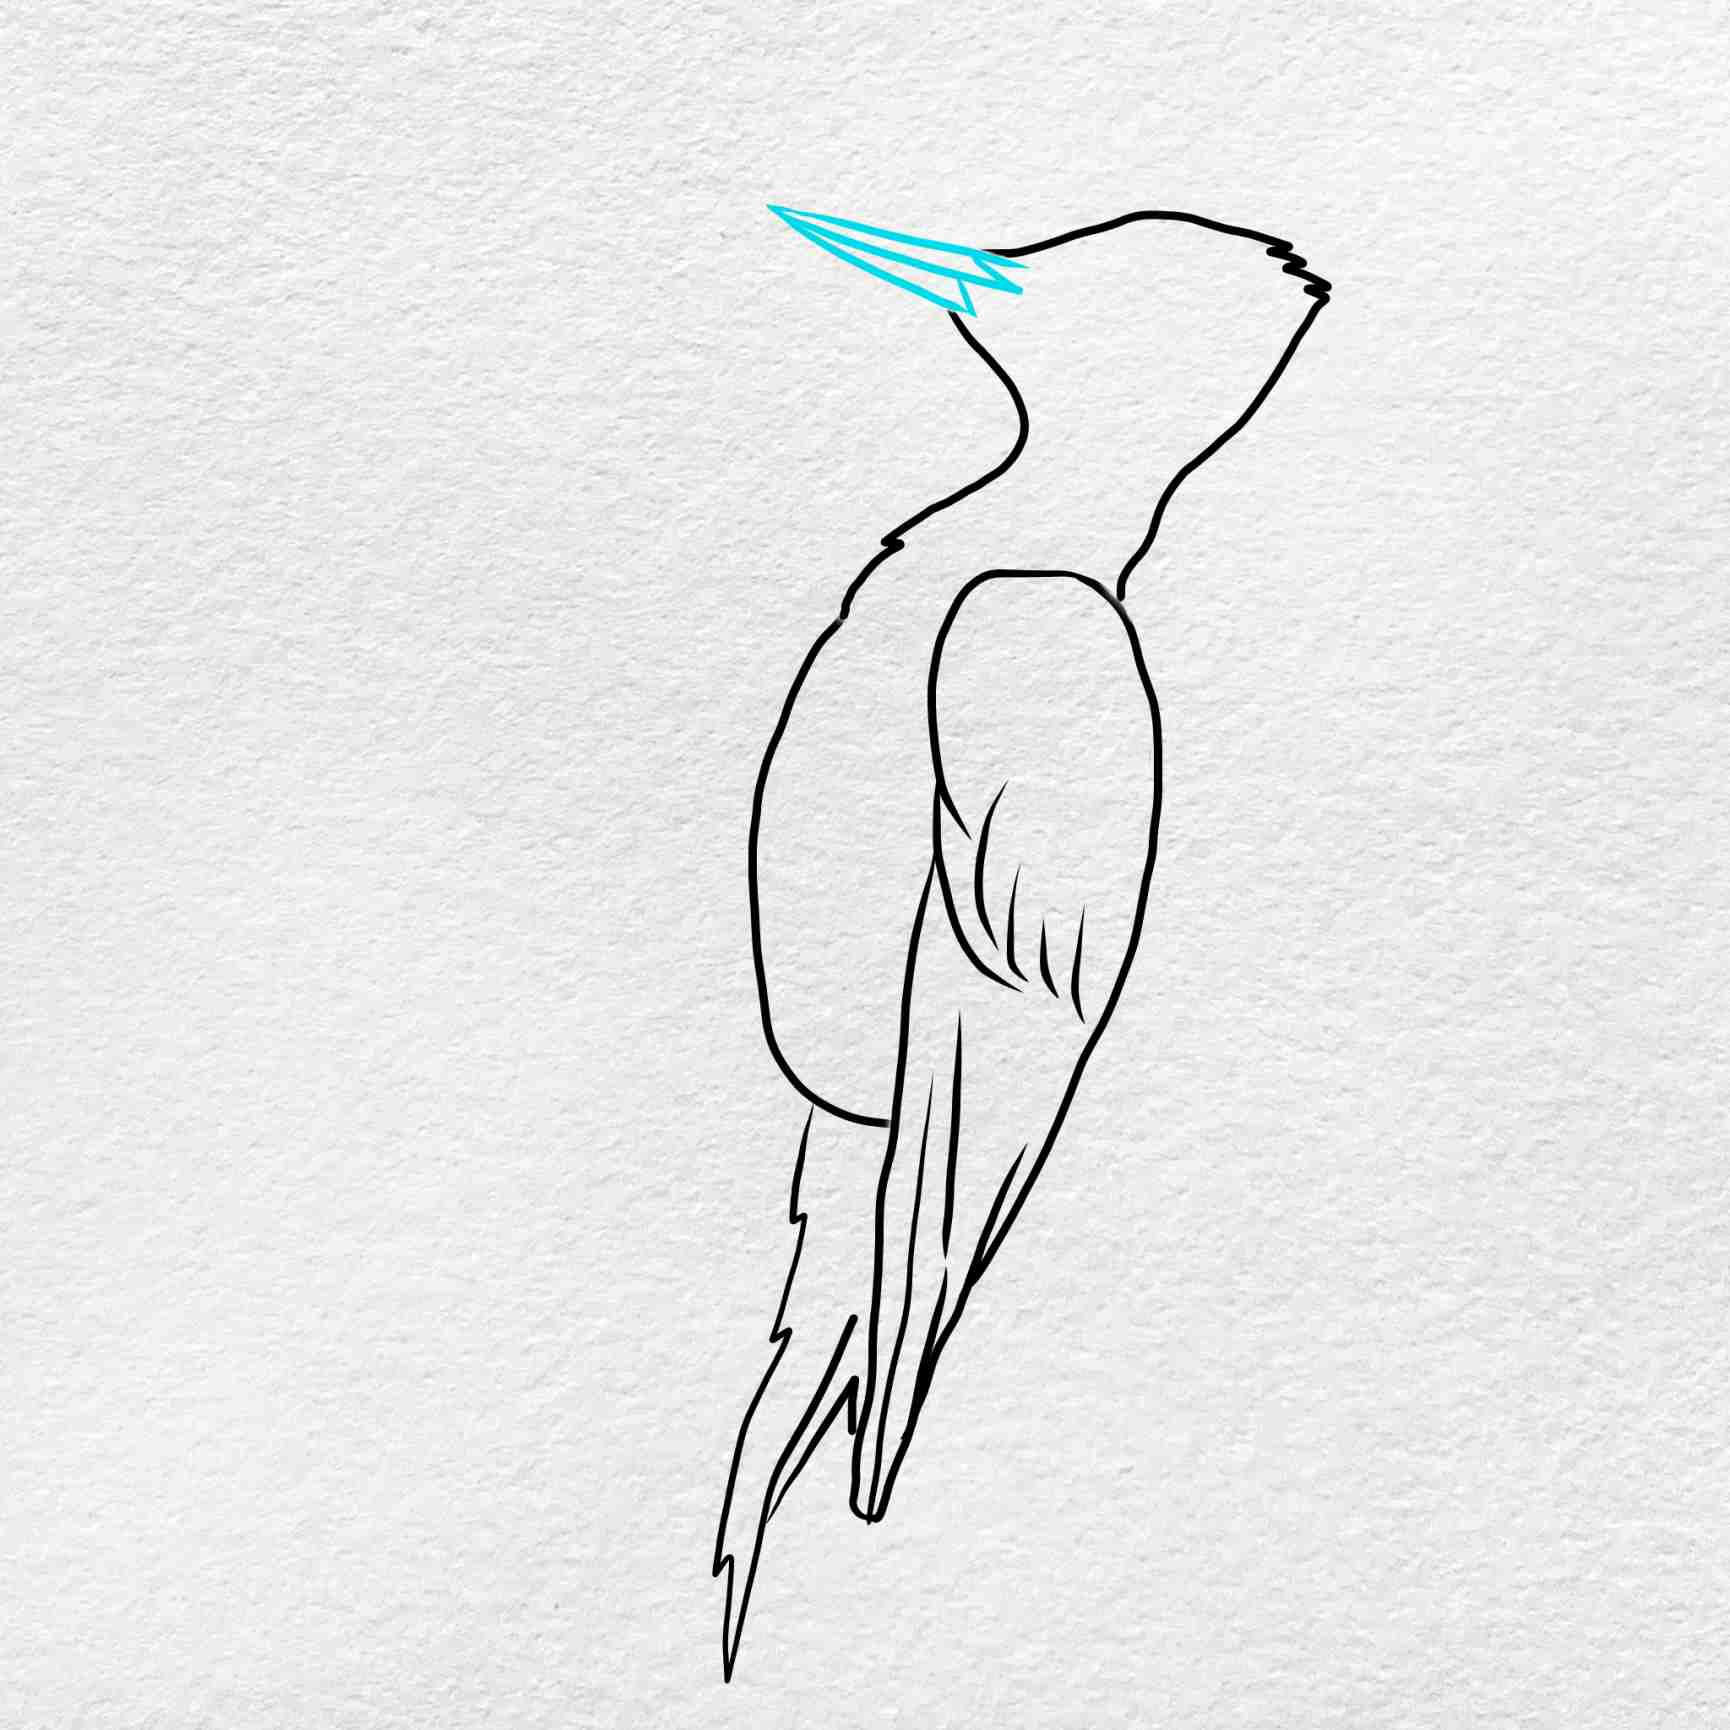 How To Draw A Woodpecker: Step 5